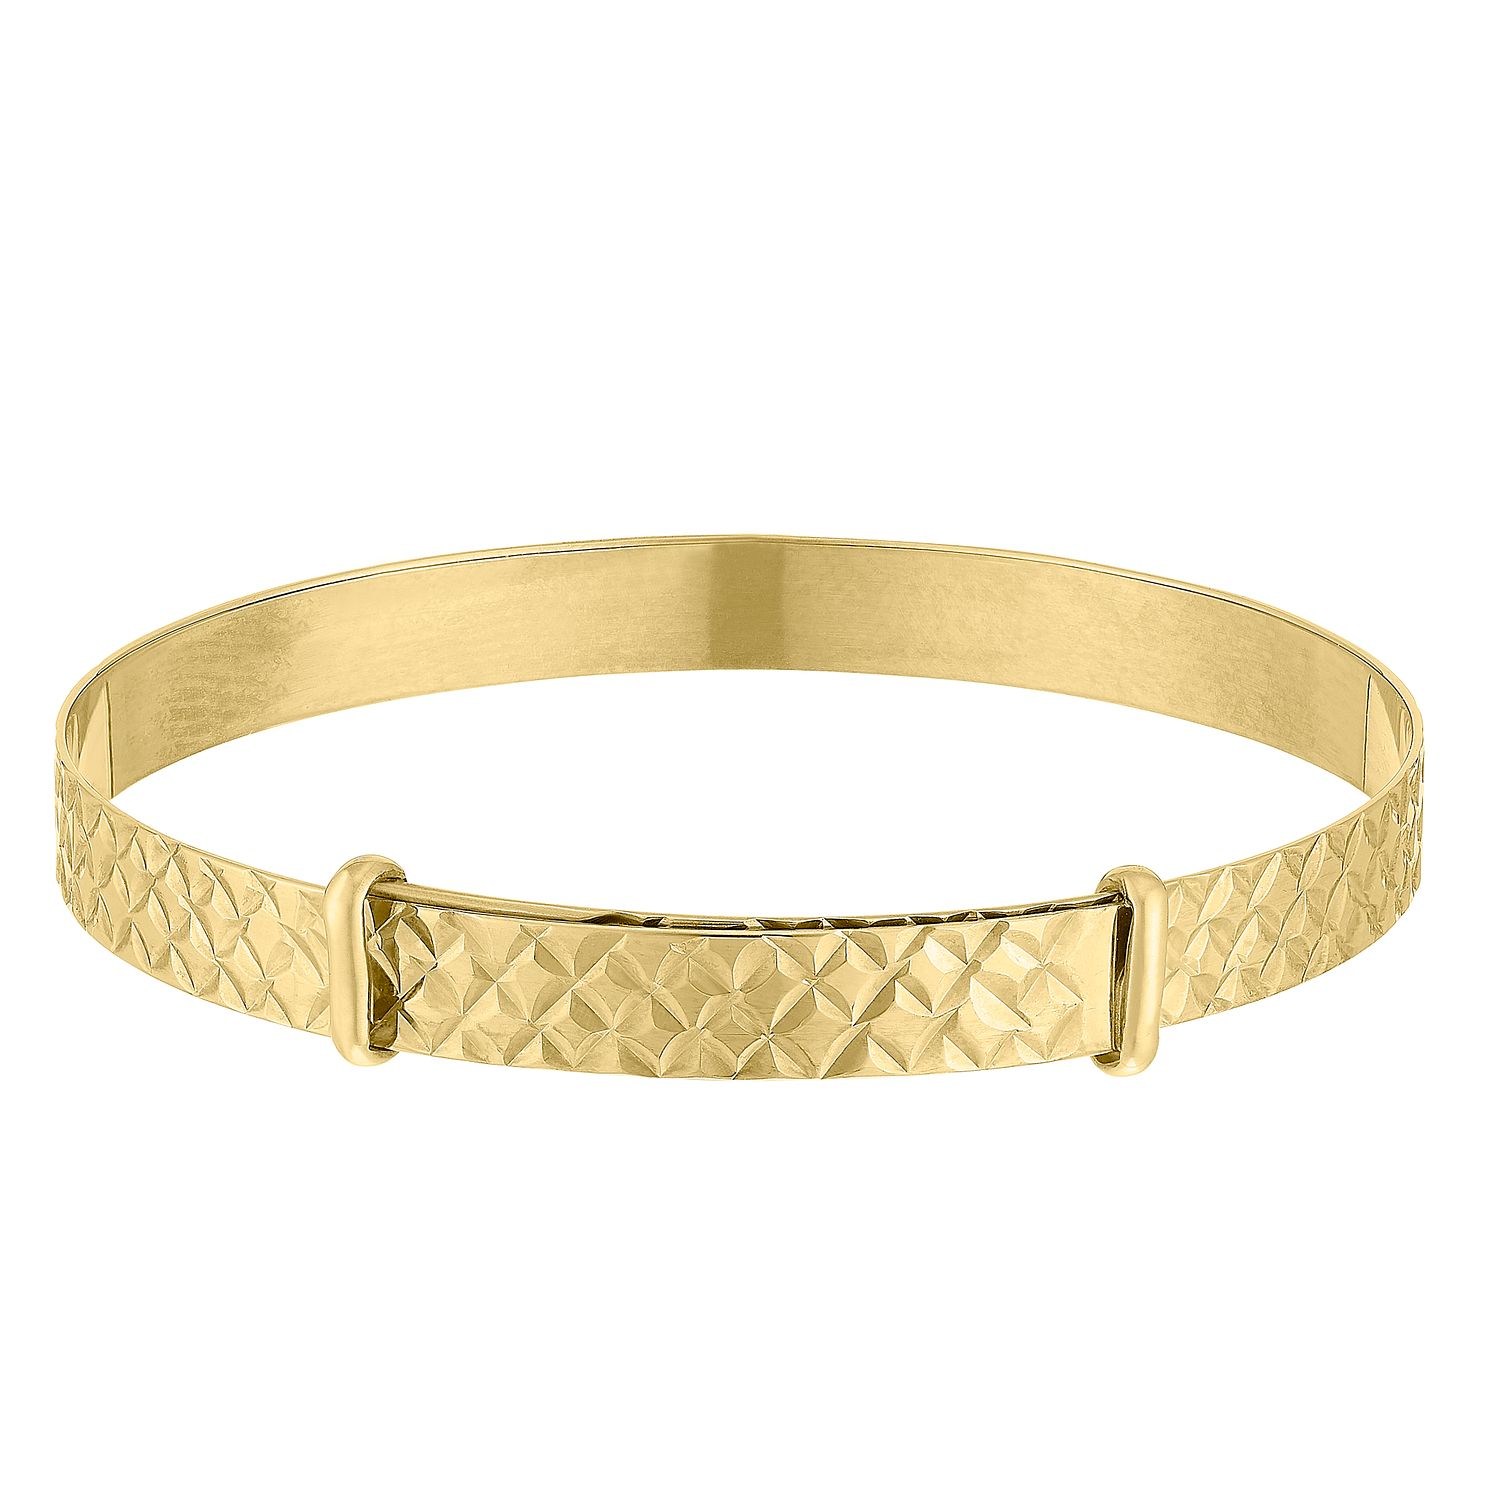 Children's 9ct Yellow Gold Patterned Expandable Bangle - Product number 9665153